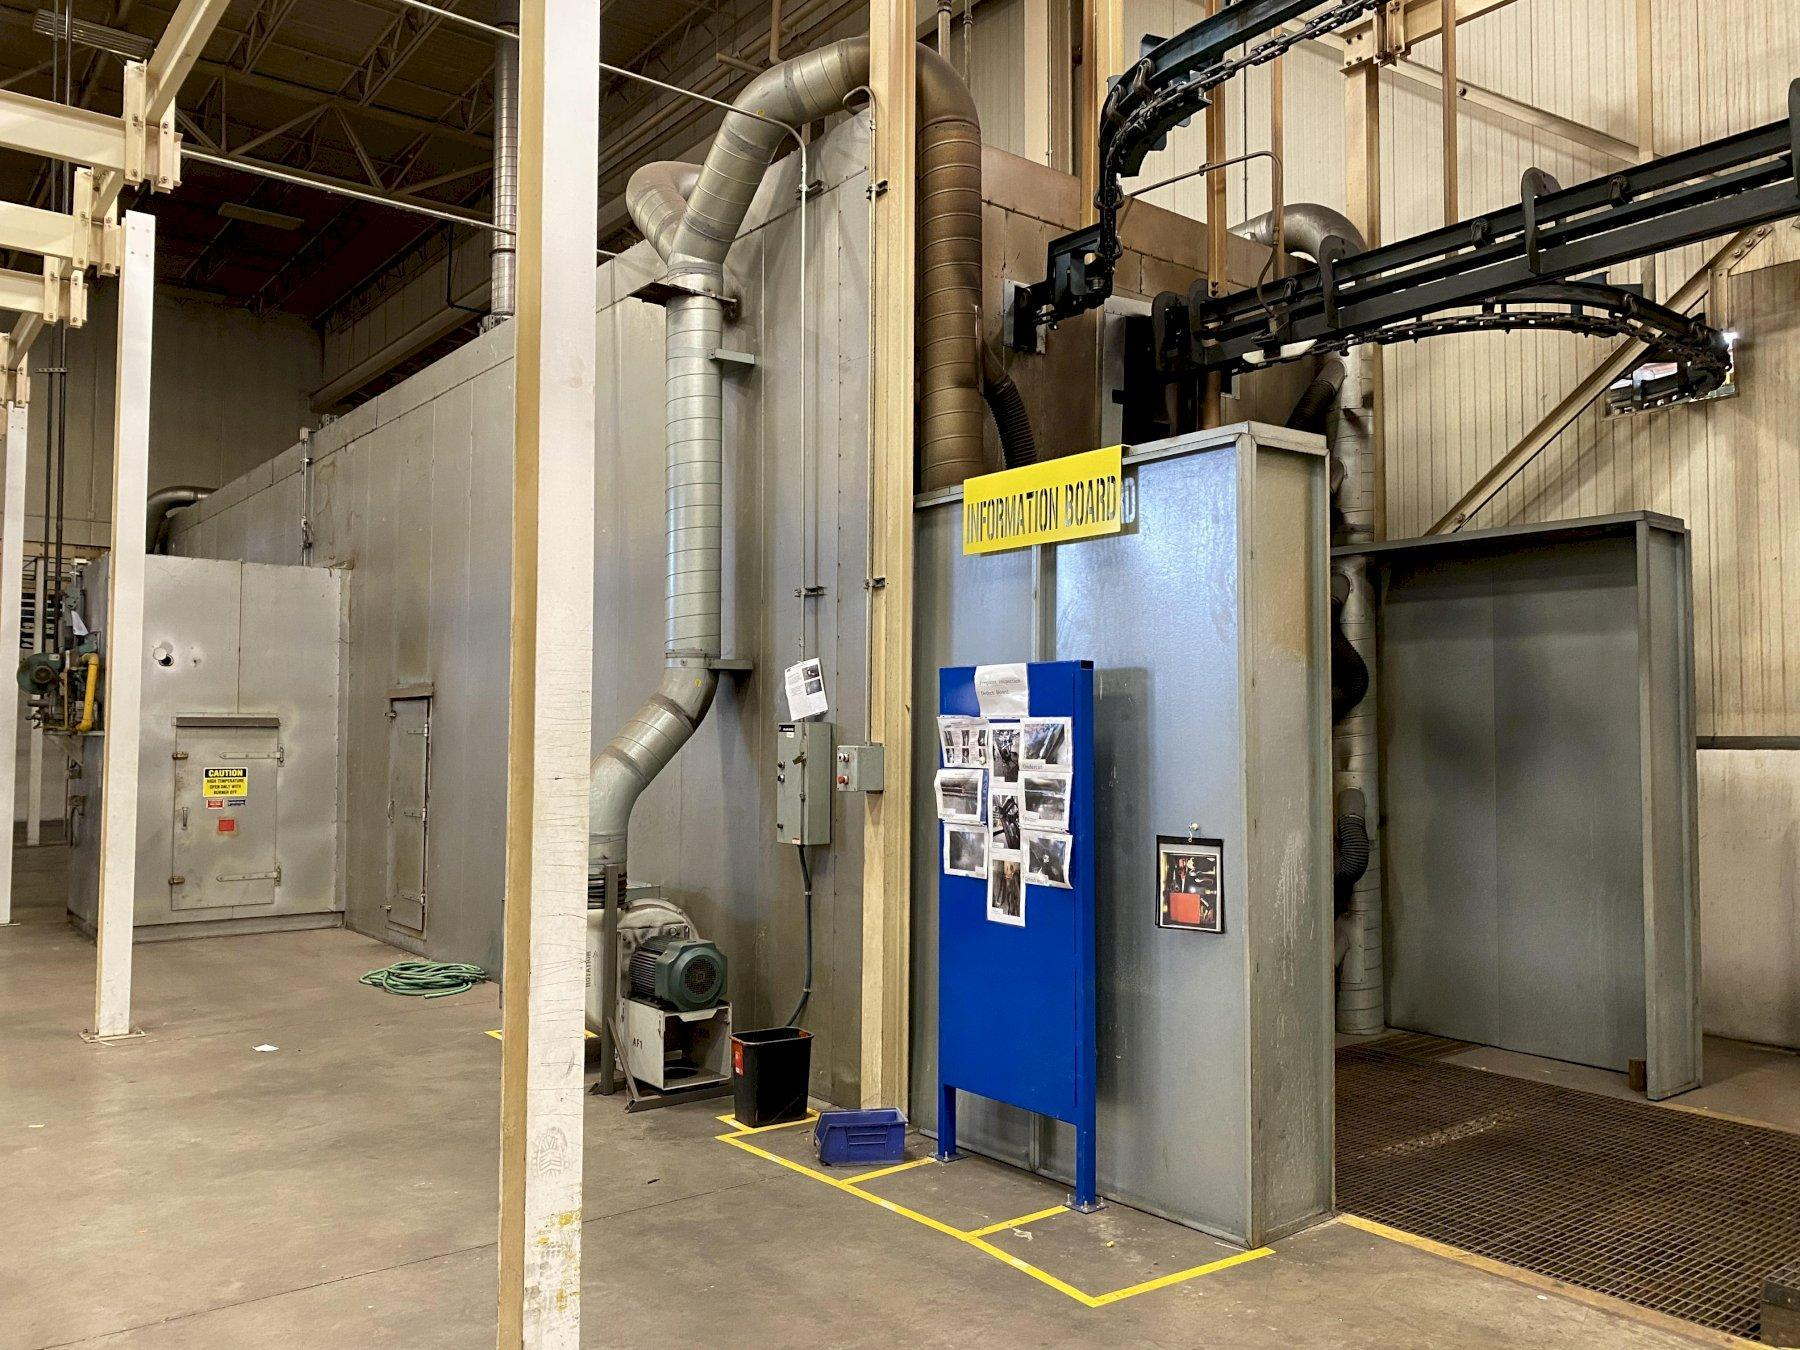 NORDSON POWDER COATING SYSTEM W/ KOCH 7 STAGE WASHER AND DRYER. STOCK # 0953721